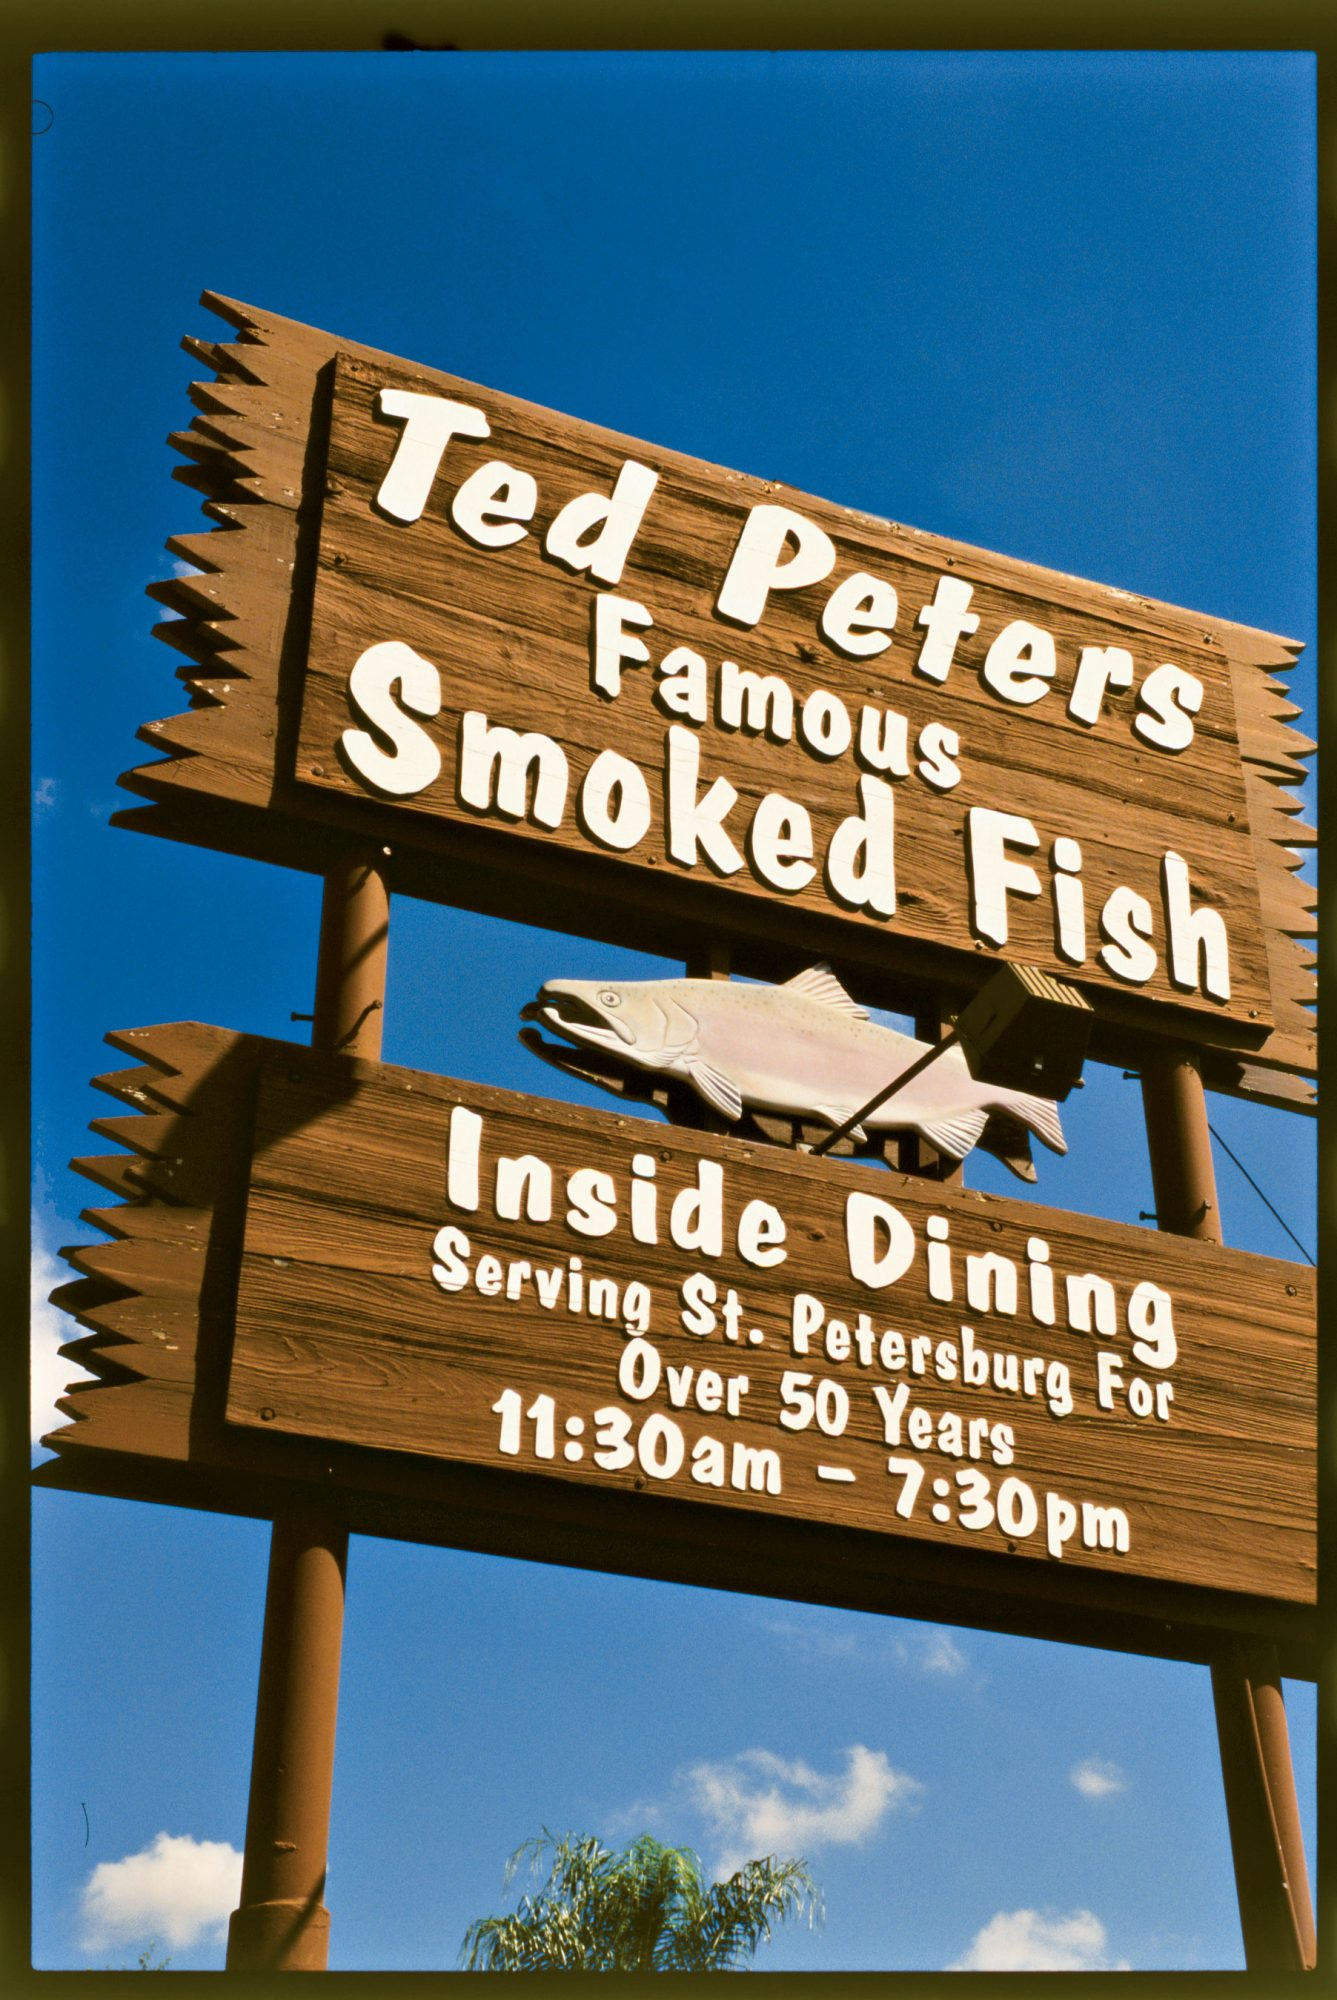 Ted Peters Smoked Fish